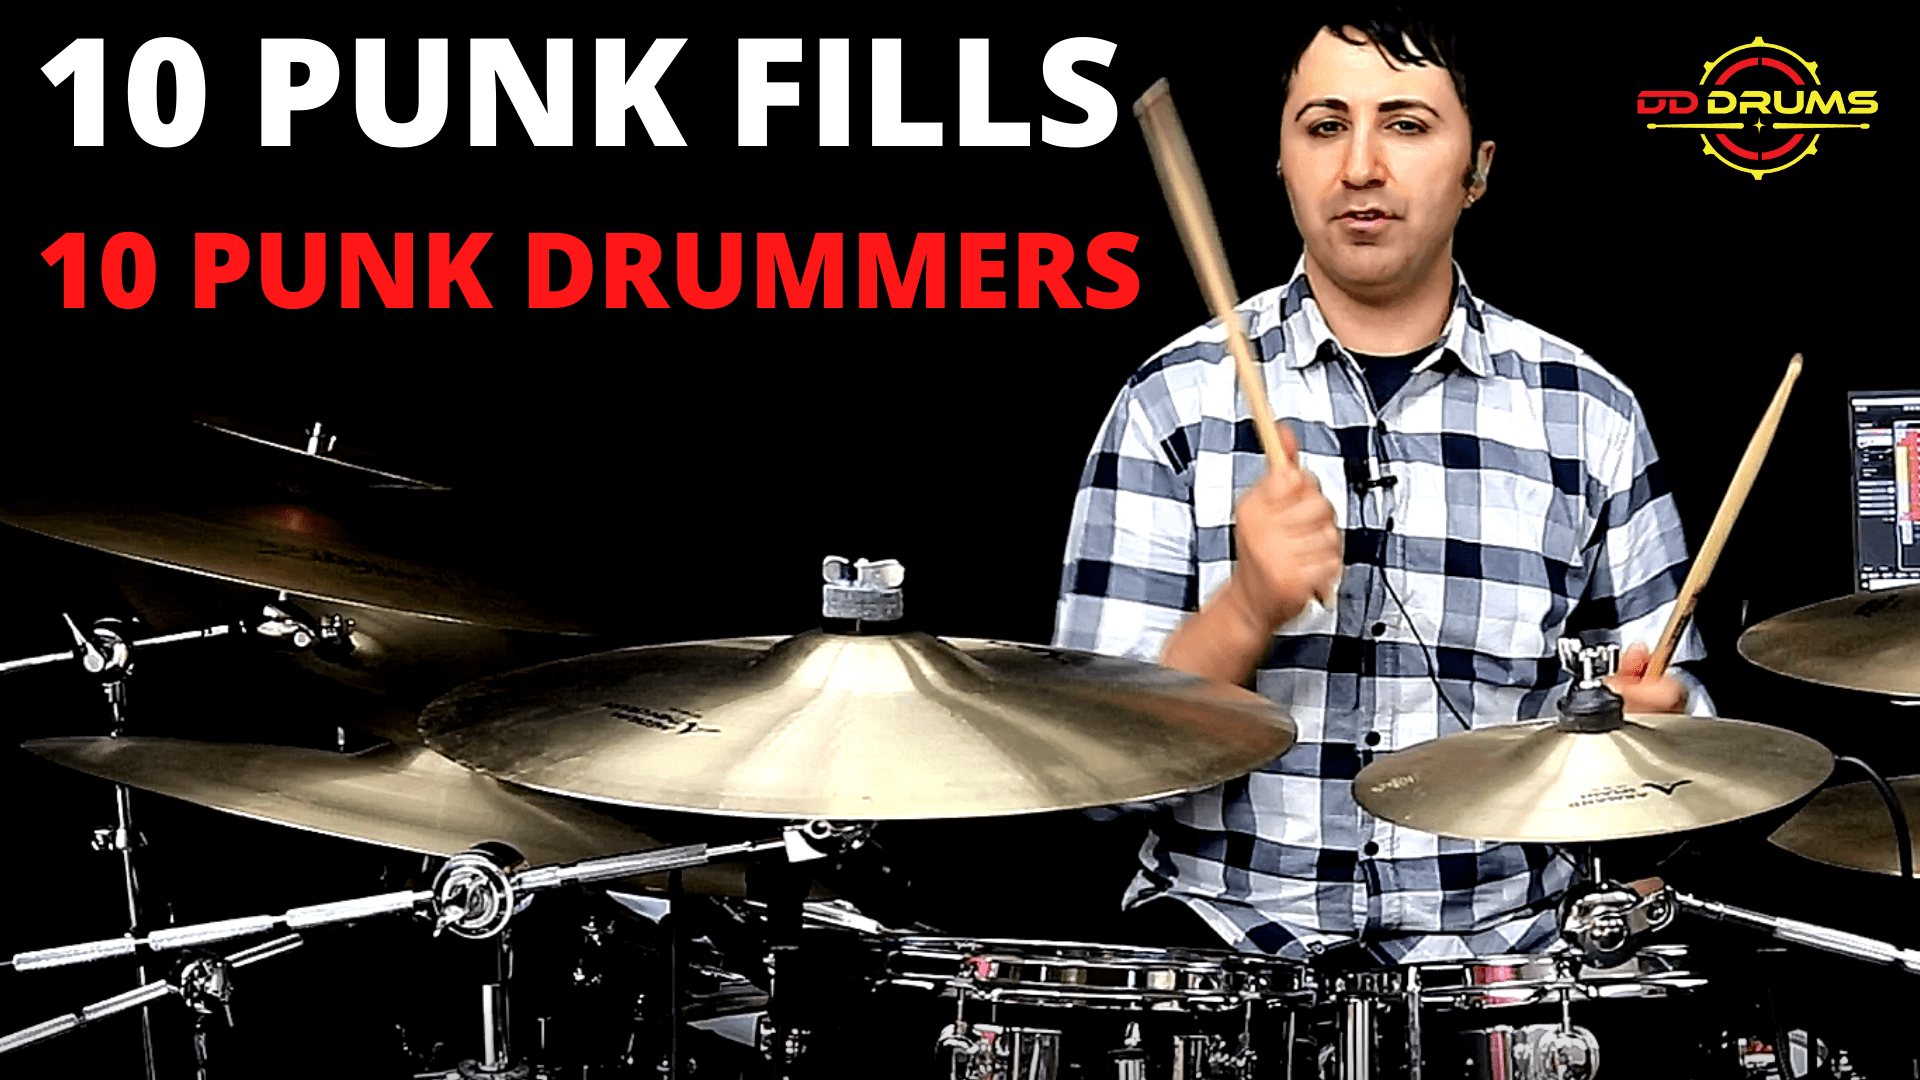 10 Punk Fills from 10 Punk Drummers – Drum Lesson